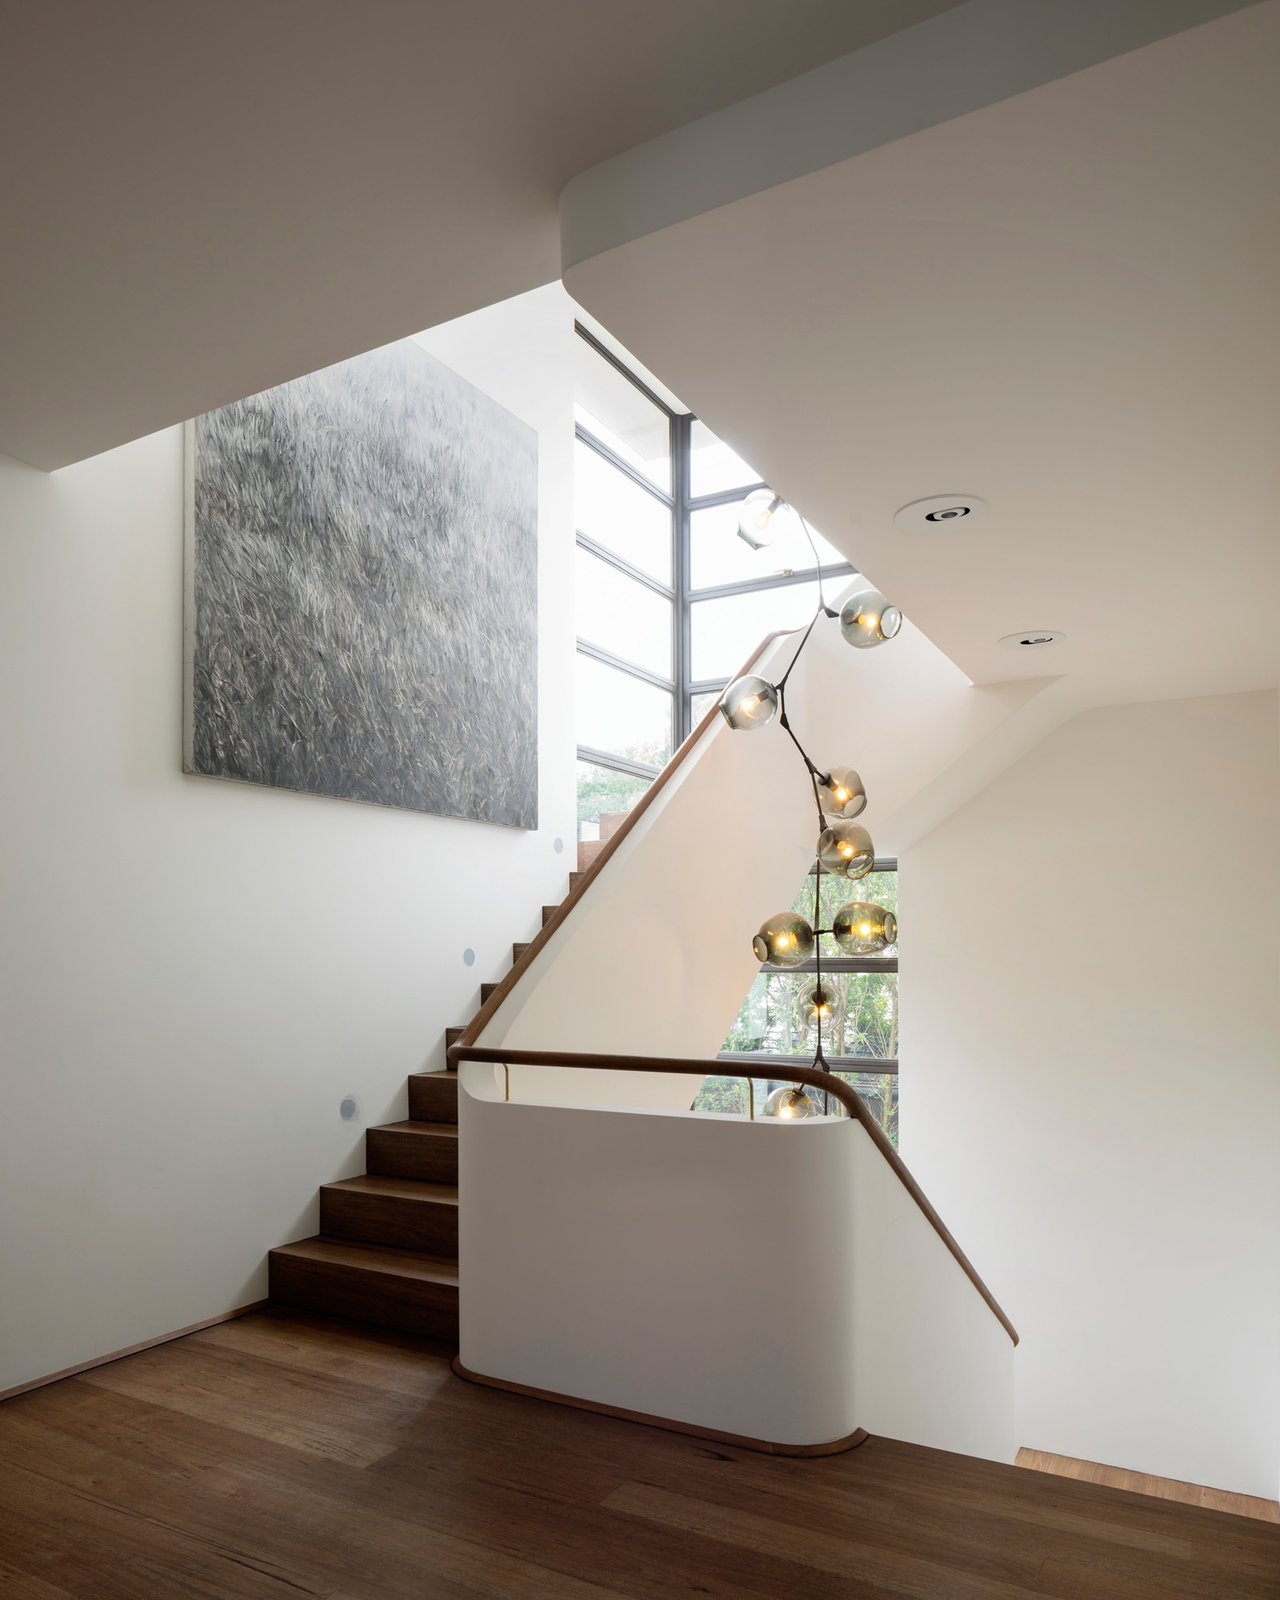 The seven metre tall Lindsey Adelman chandelier dominates the stairwell. Light projectors, concealed in the suspended ceiling, illuminate the artwork. www.lindseyadelman.com © Justin Alexander  Harbour Front-Row Seat by Luigi Rosselli Architects